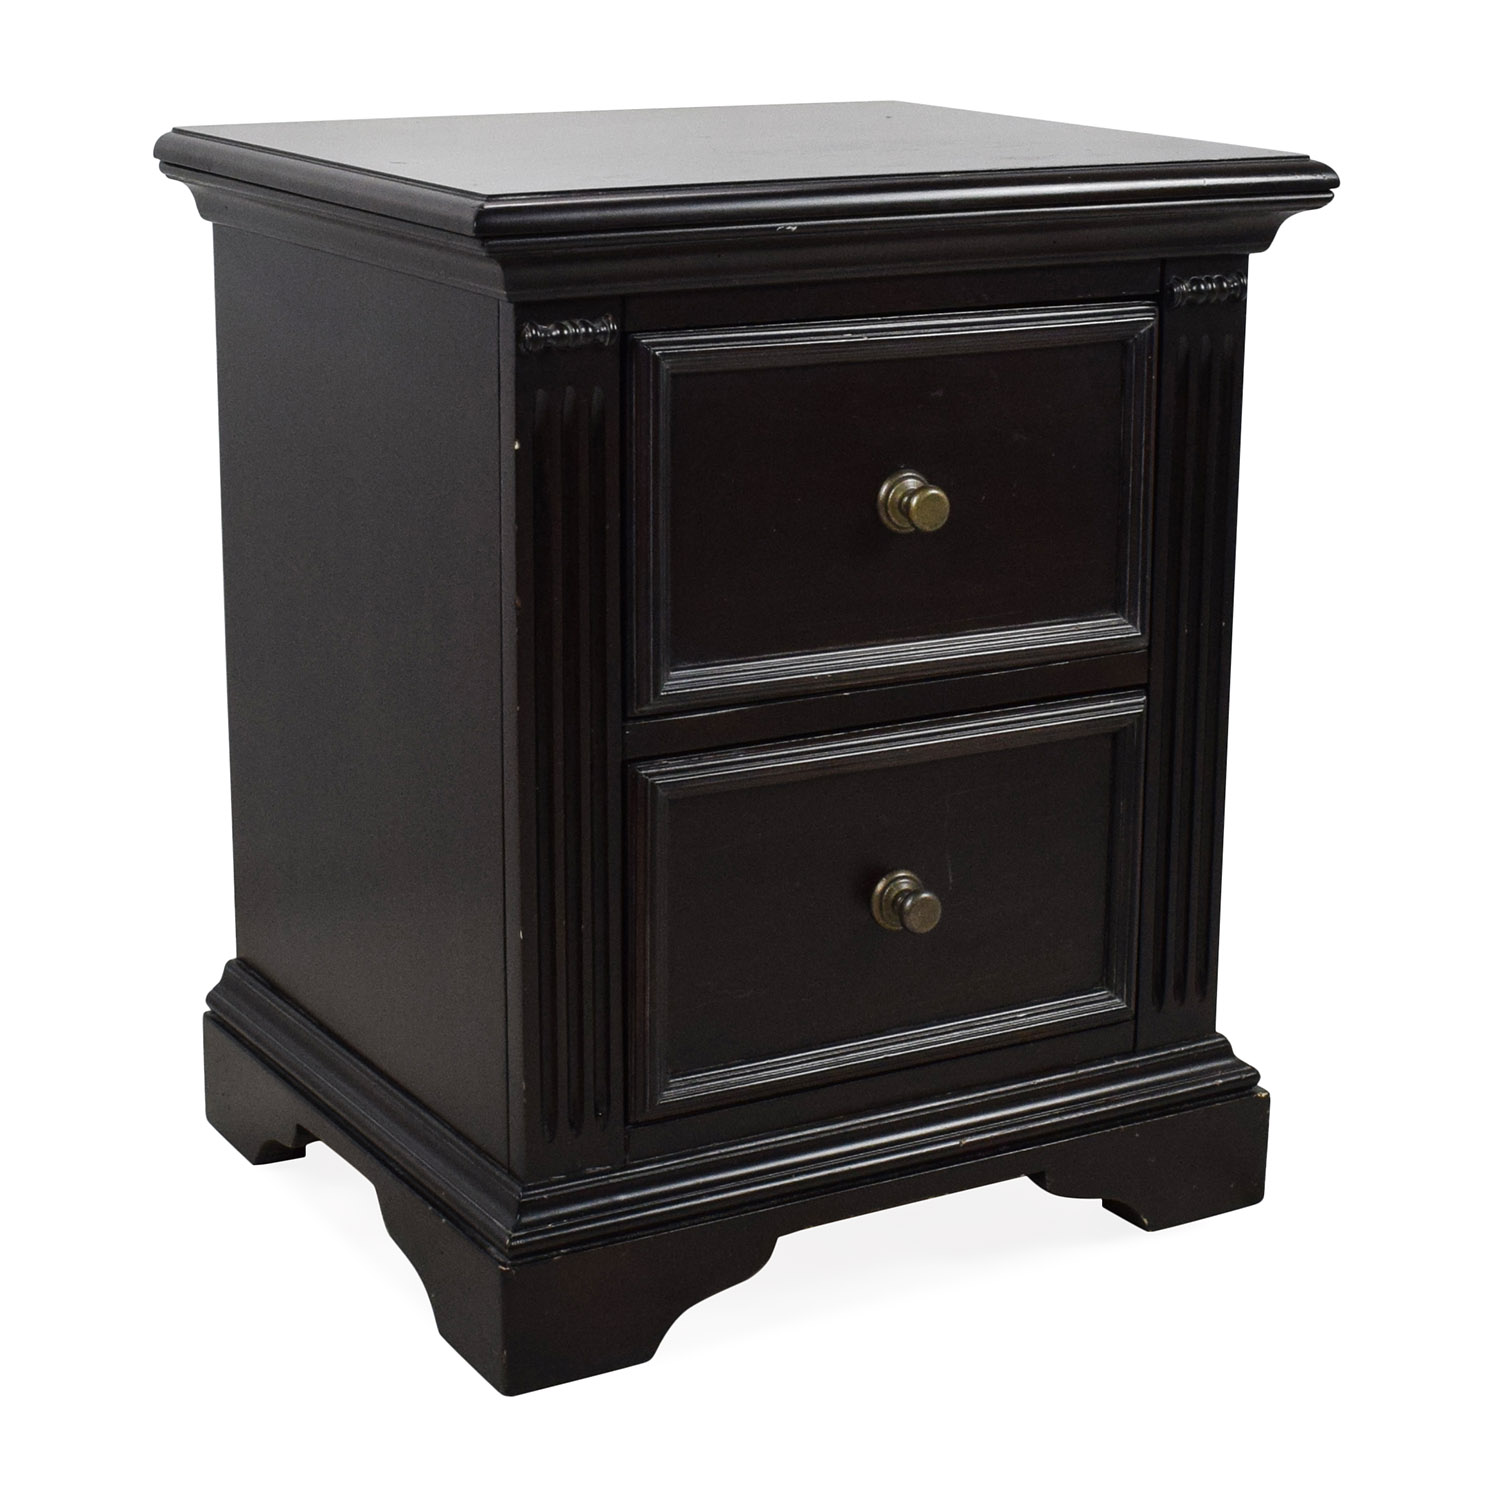 Pulaski Furniture Pulaski Solid Wood Nightstand nyc